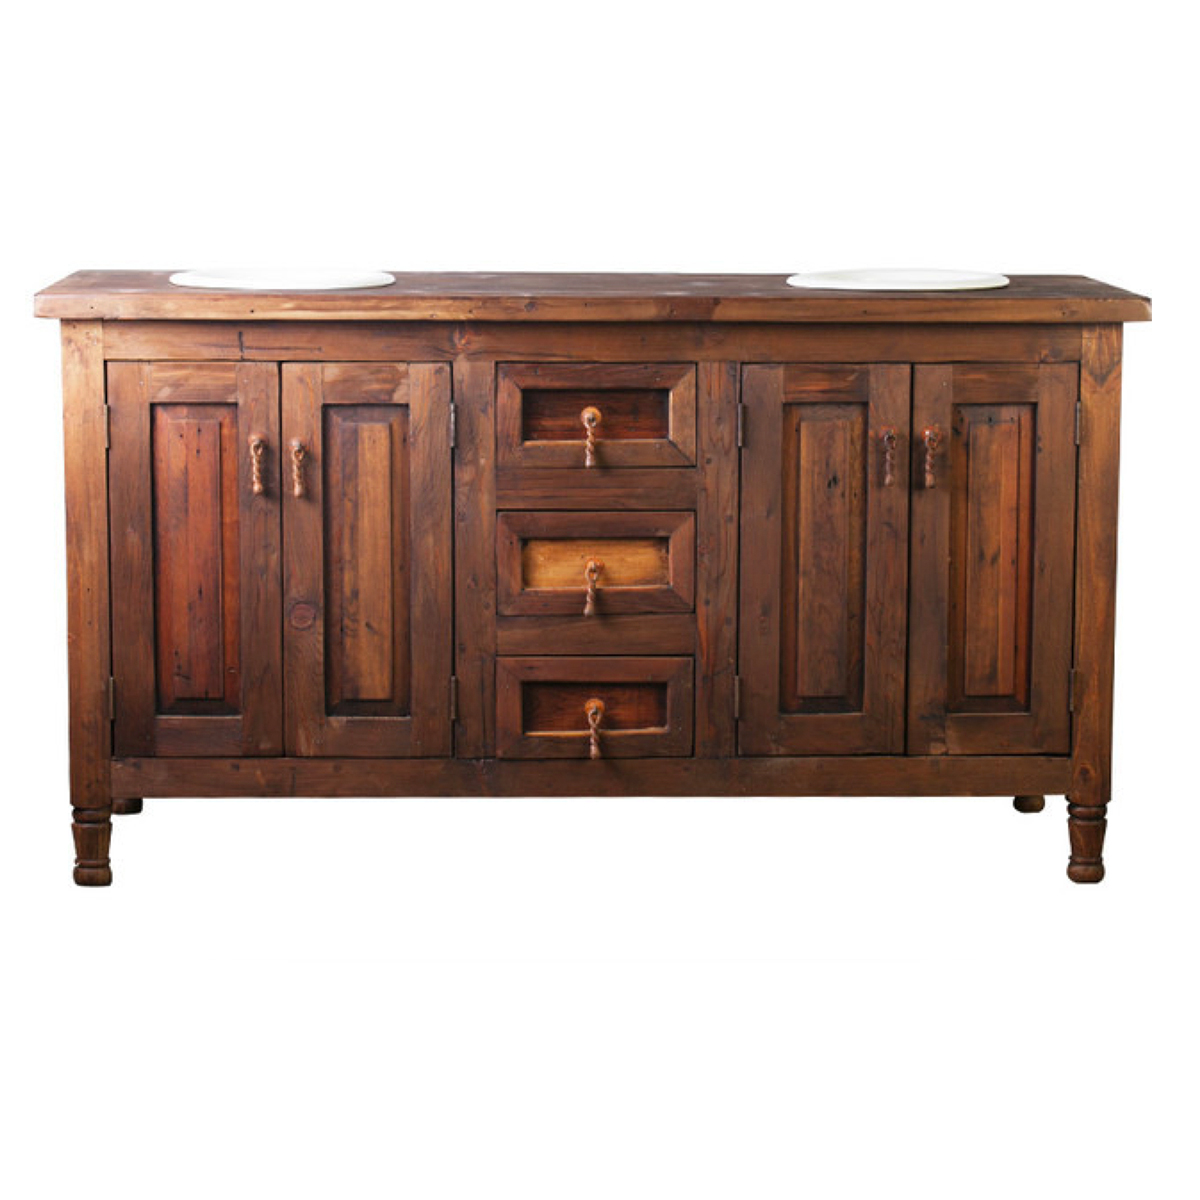 Double sink barnwood vanity made from reclaimed wood for sale for Bathroom vanities